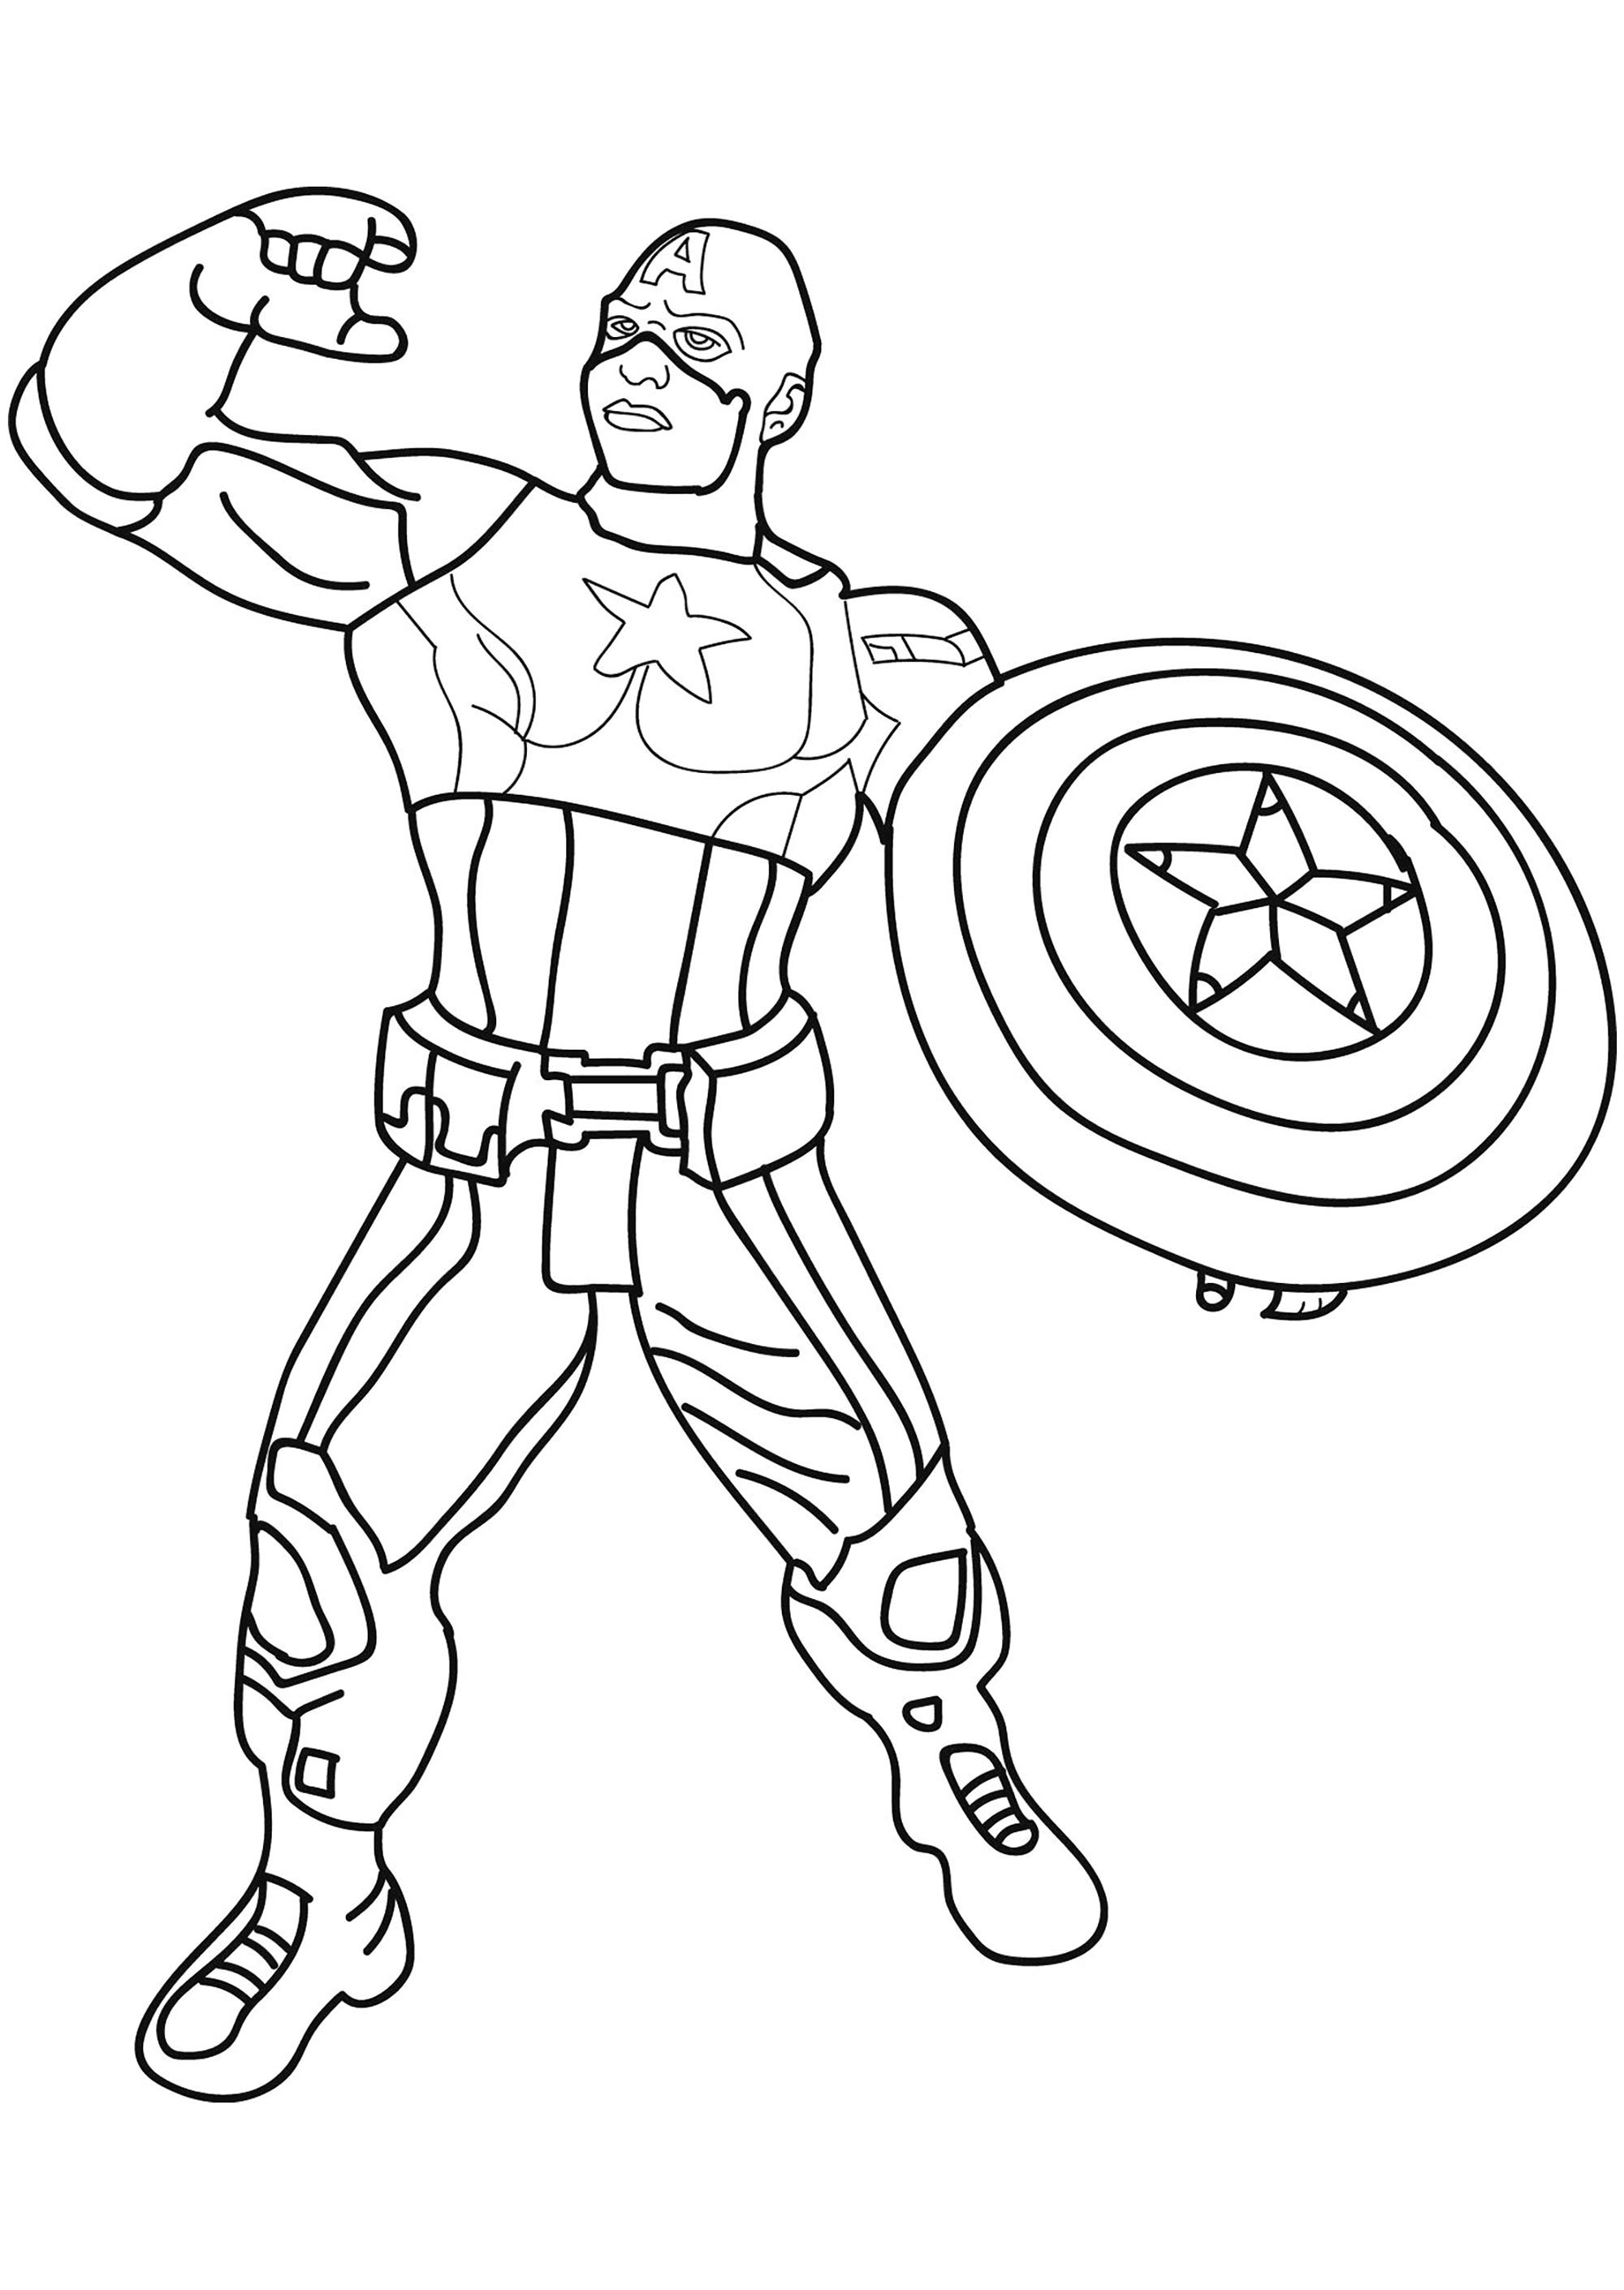 Ironman And Captain America Coloring Pages Best Of Captain America Coloring Page Luxury Avengers Coloring Pages With Coloriage Captain America Coloriages Pour Enfants